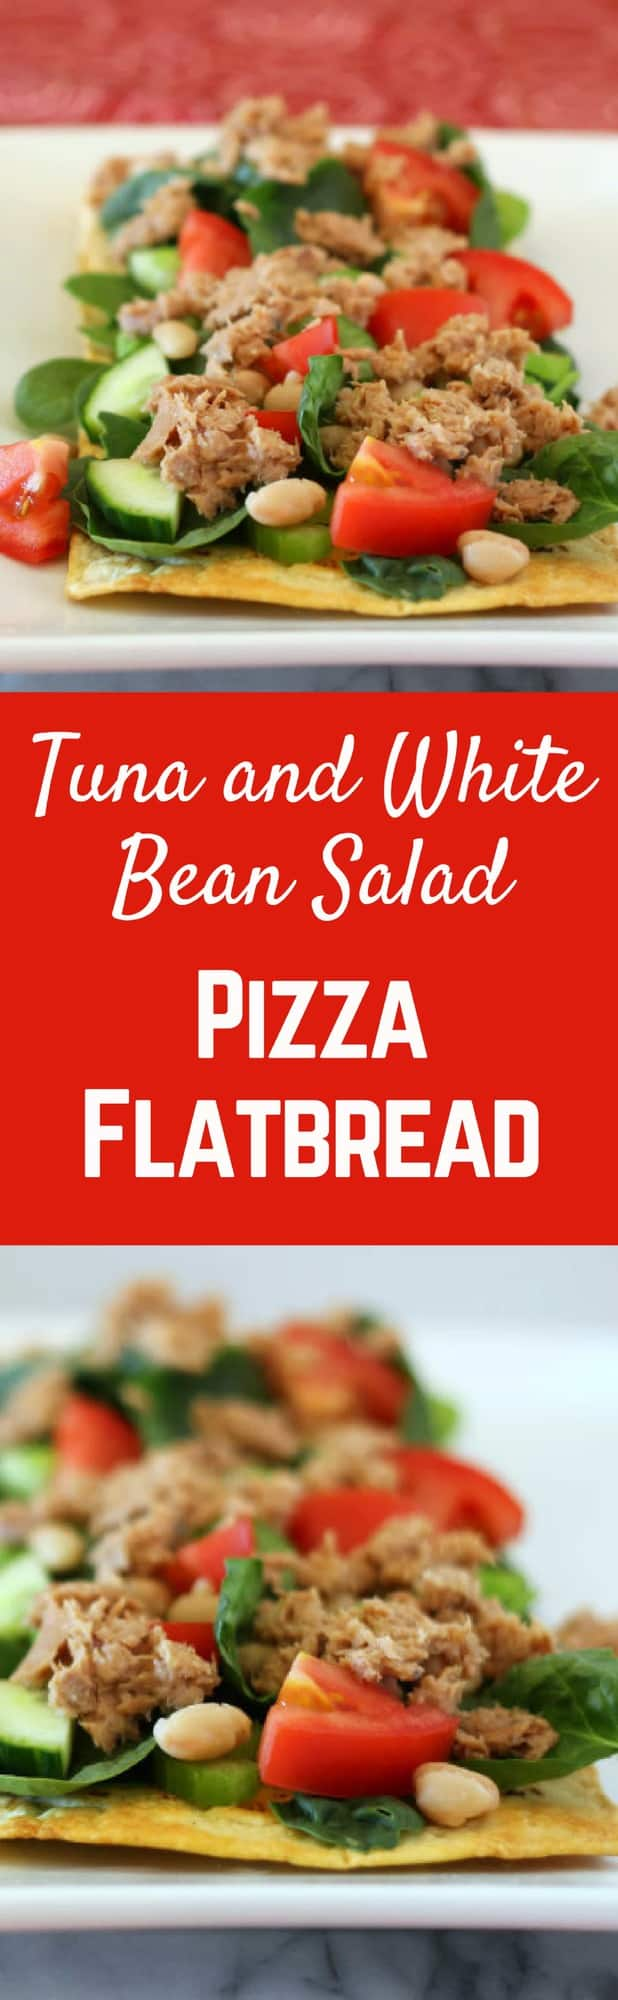 Tuna and White Bean Salad Flatbread Pizza - 27 grams of protein and less than 300 calories! Get the healthy recipe on RachelCooks.com